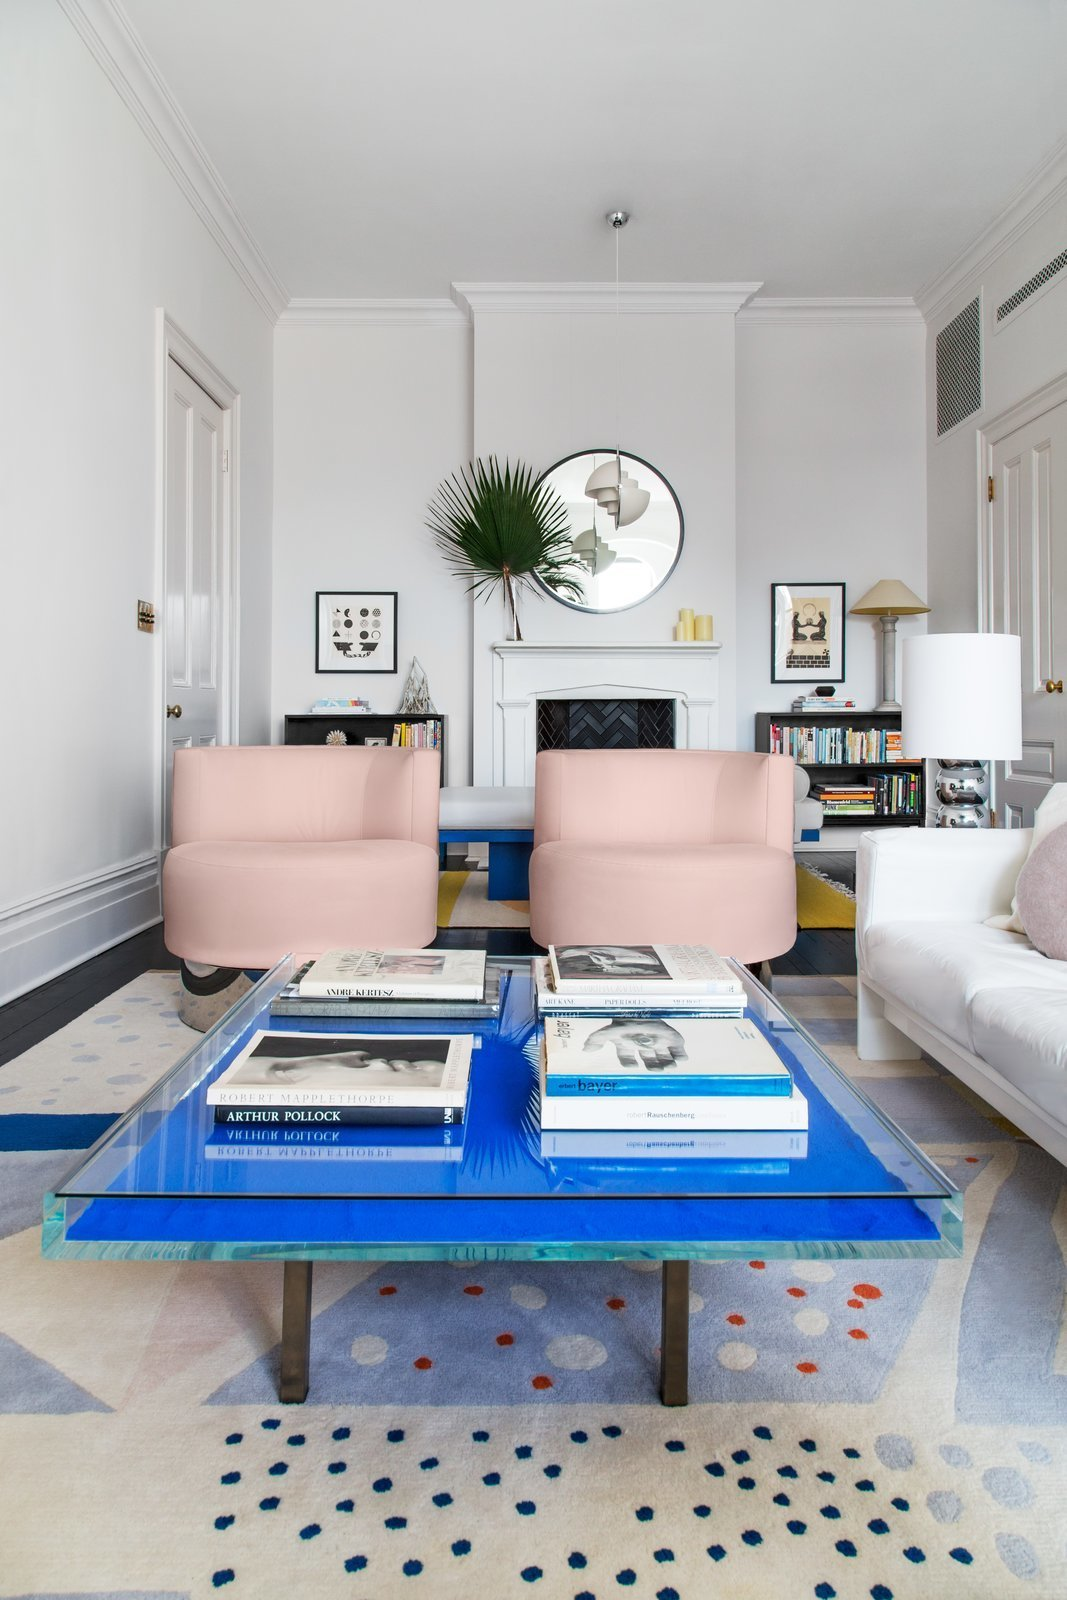 Living Room, Chair, Coffee Tables, Rug Floor, Standard Layout Fireplace, Table Lighting, and Pendant Lighting  Photo 3 of 22 in A 19th-Century Schoolhouse in Brooklyn Becomes a Classy Apartment